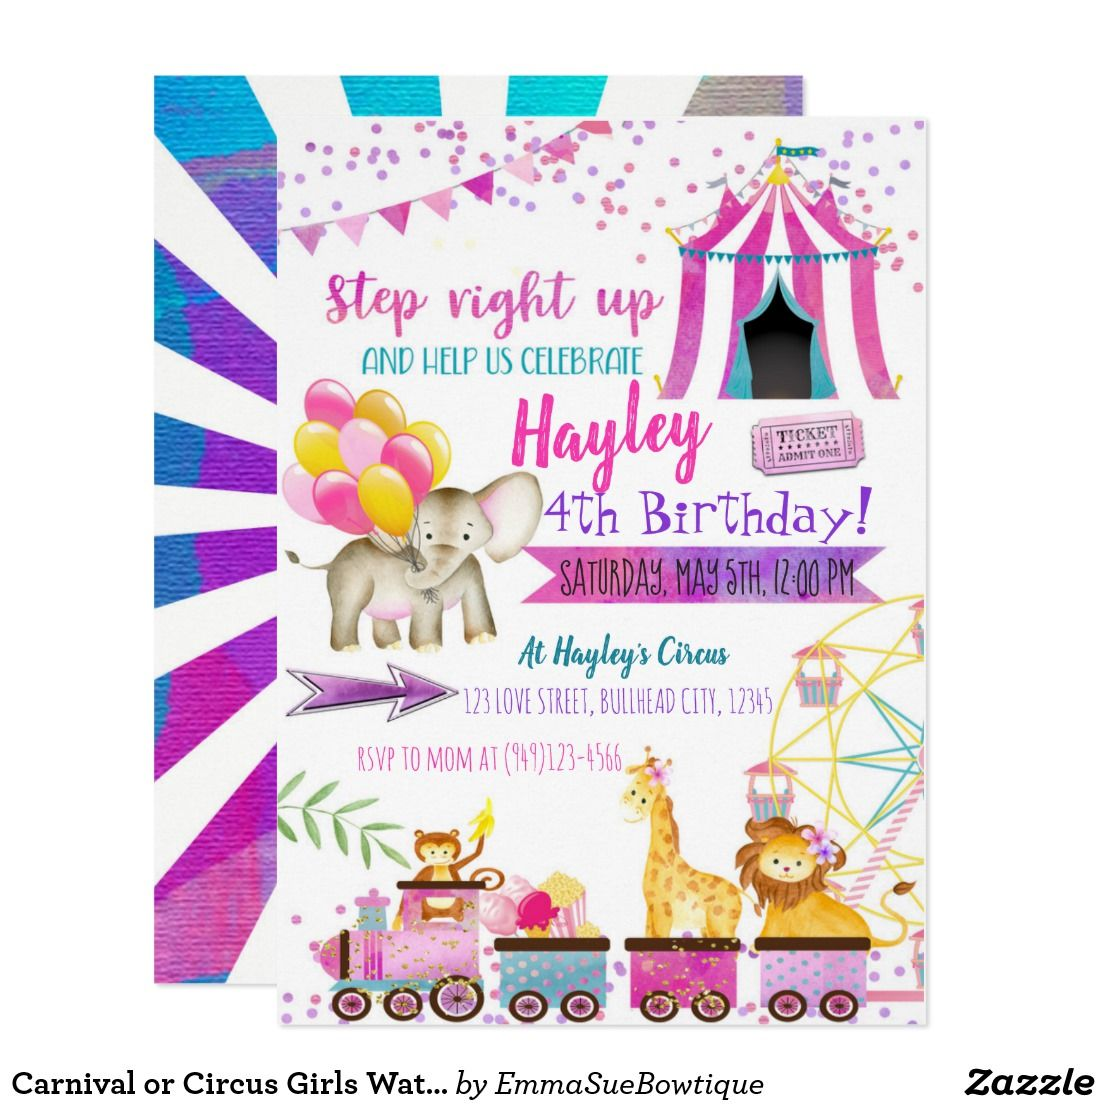 Carnival or Circus Girls Watercolor Birthday Invitation | Kids 2-12 ...